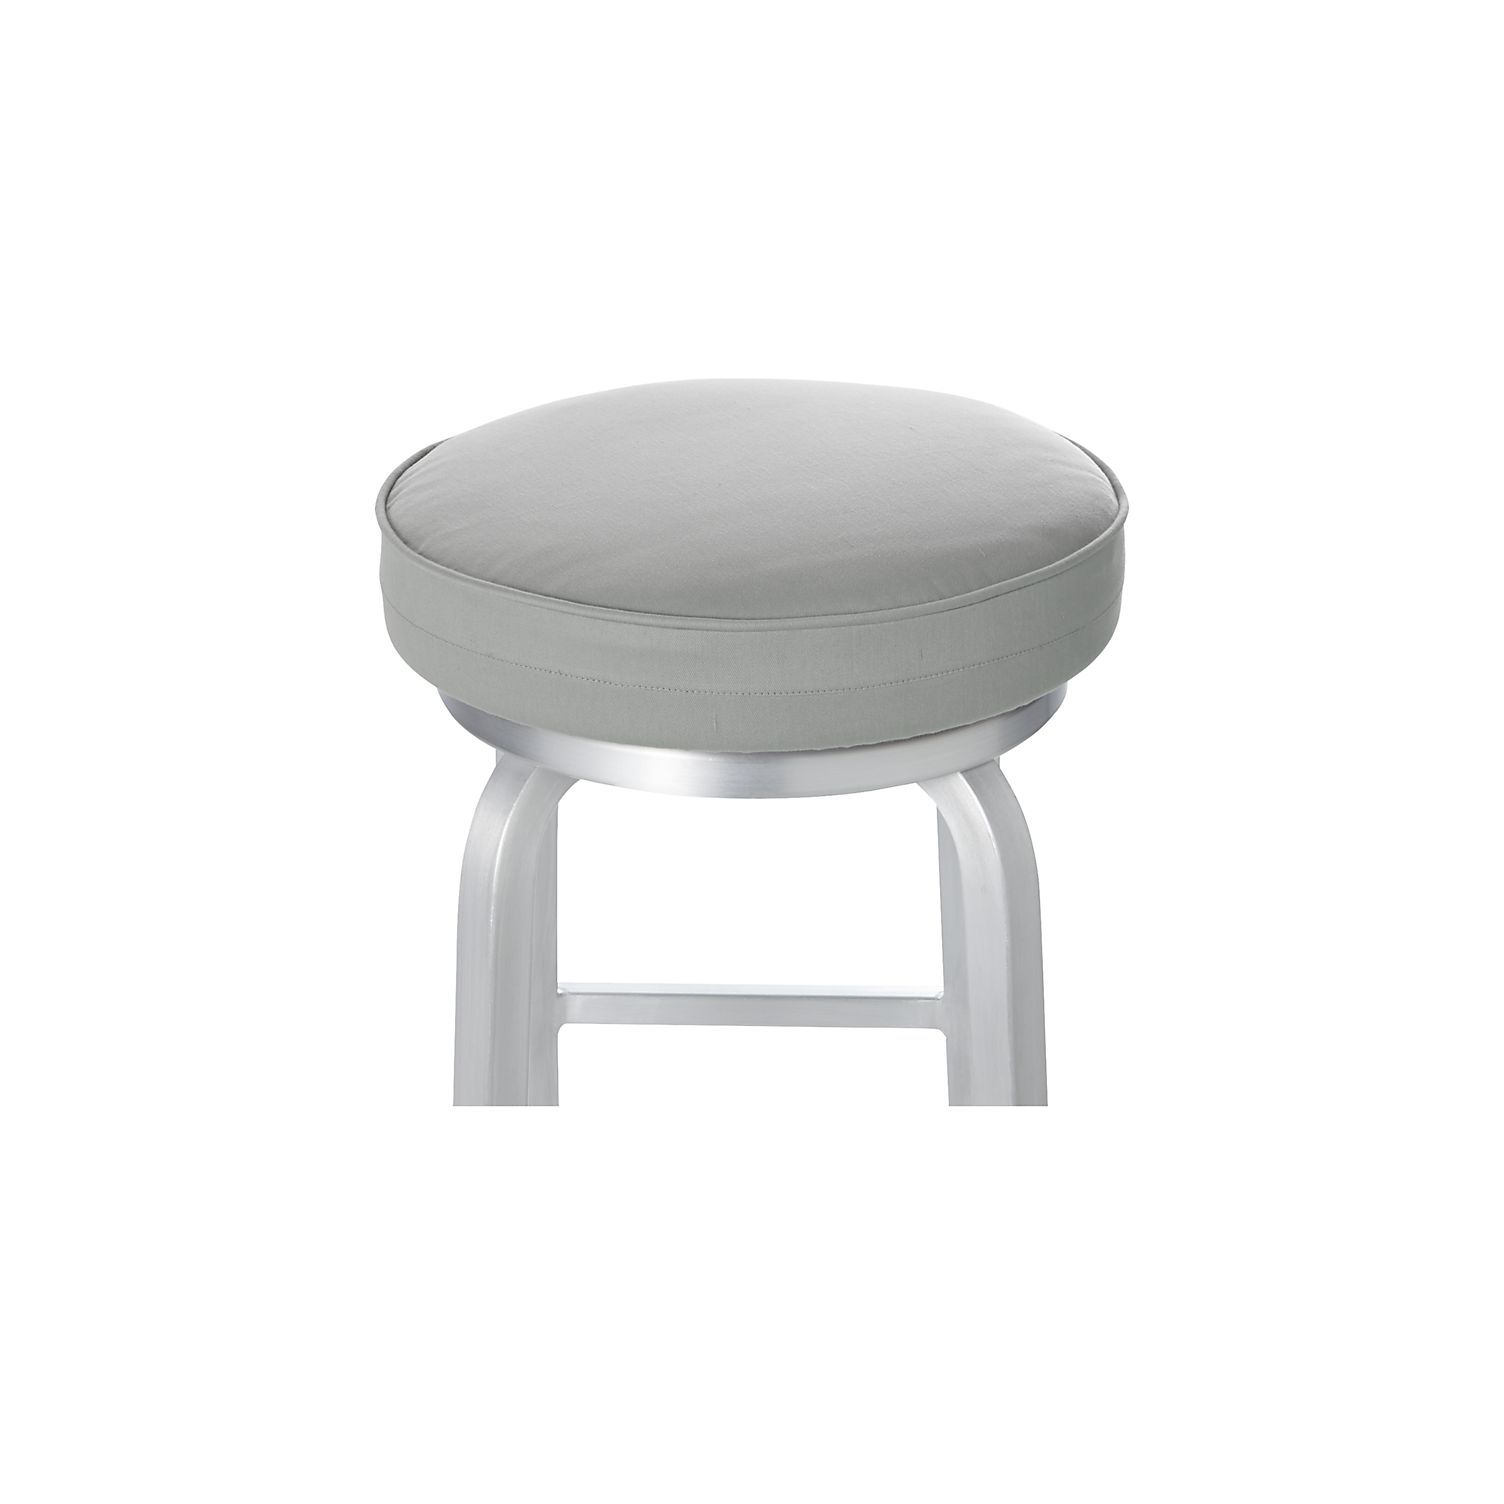 Make your chairs more comfortable with chair cushions from Crate and Barrel. Browse bar stool, dining and kitchen chair cushions. Order chair pads online.